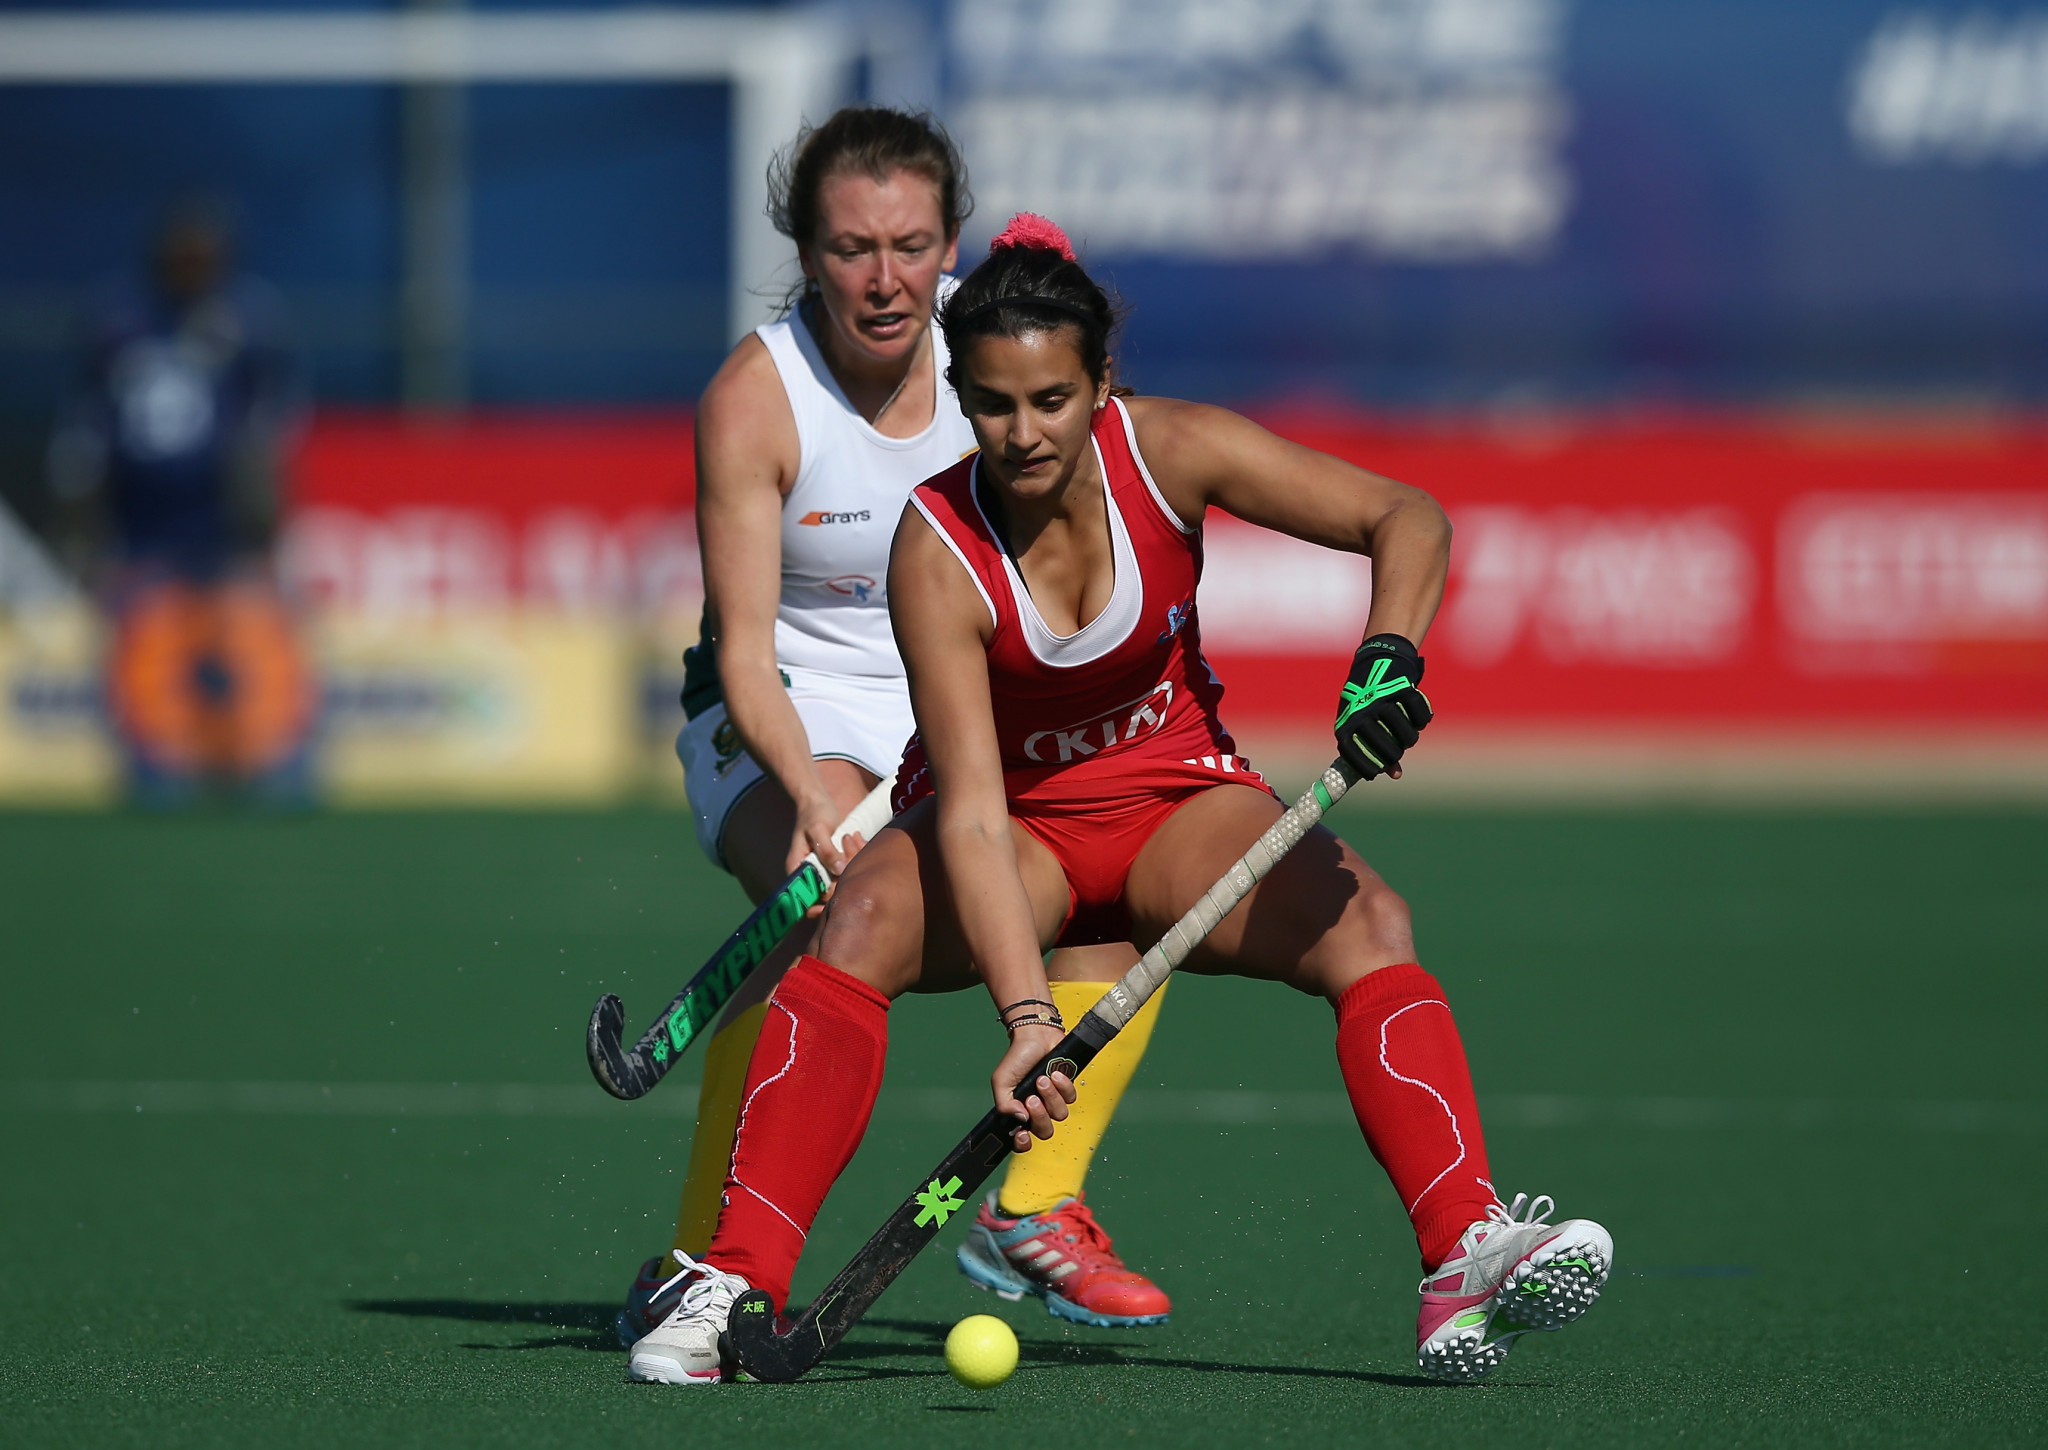 Chile's women will fancy their chances on home soil ©FIH